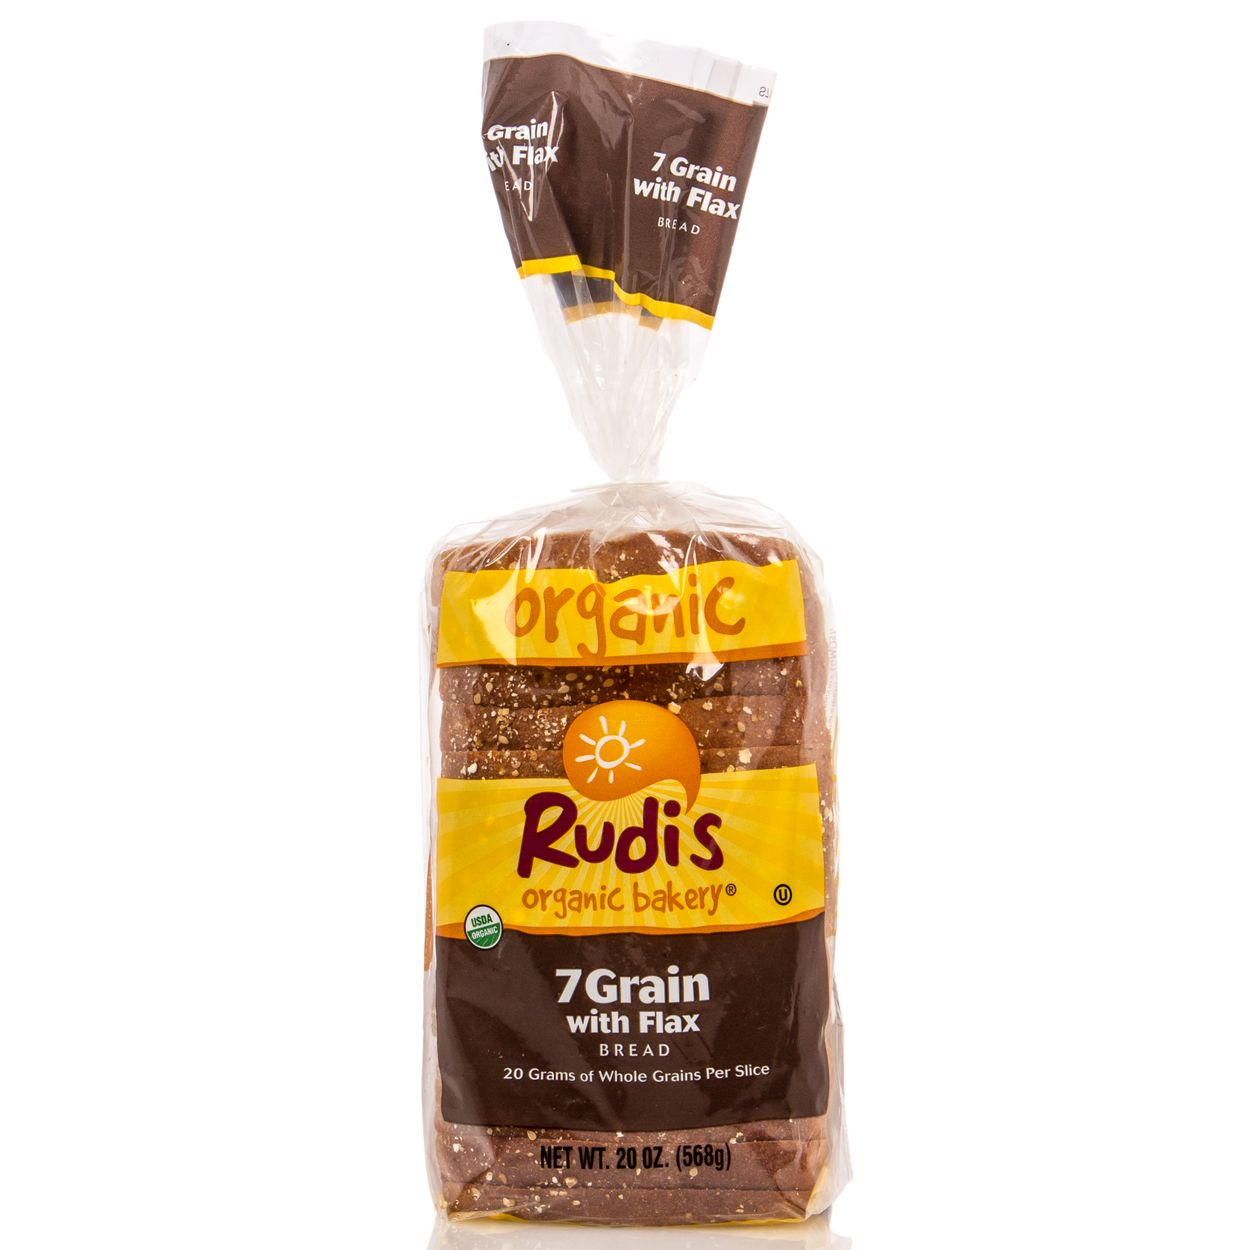 RUDI'S BAKERY - COUNTRY MORNING 7 GRAIN /W FLAX BREAD - DAIRY FREE - NON GMO - 22oz